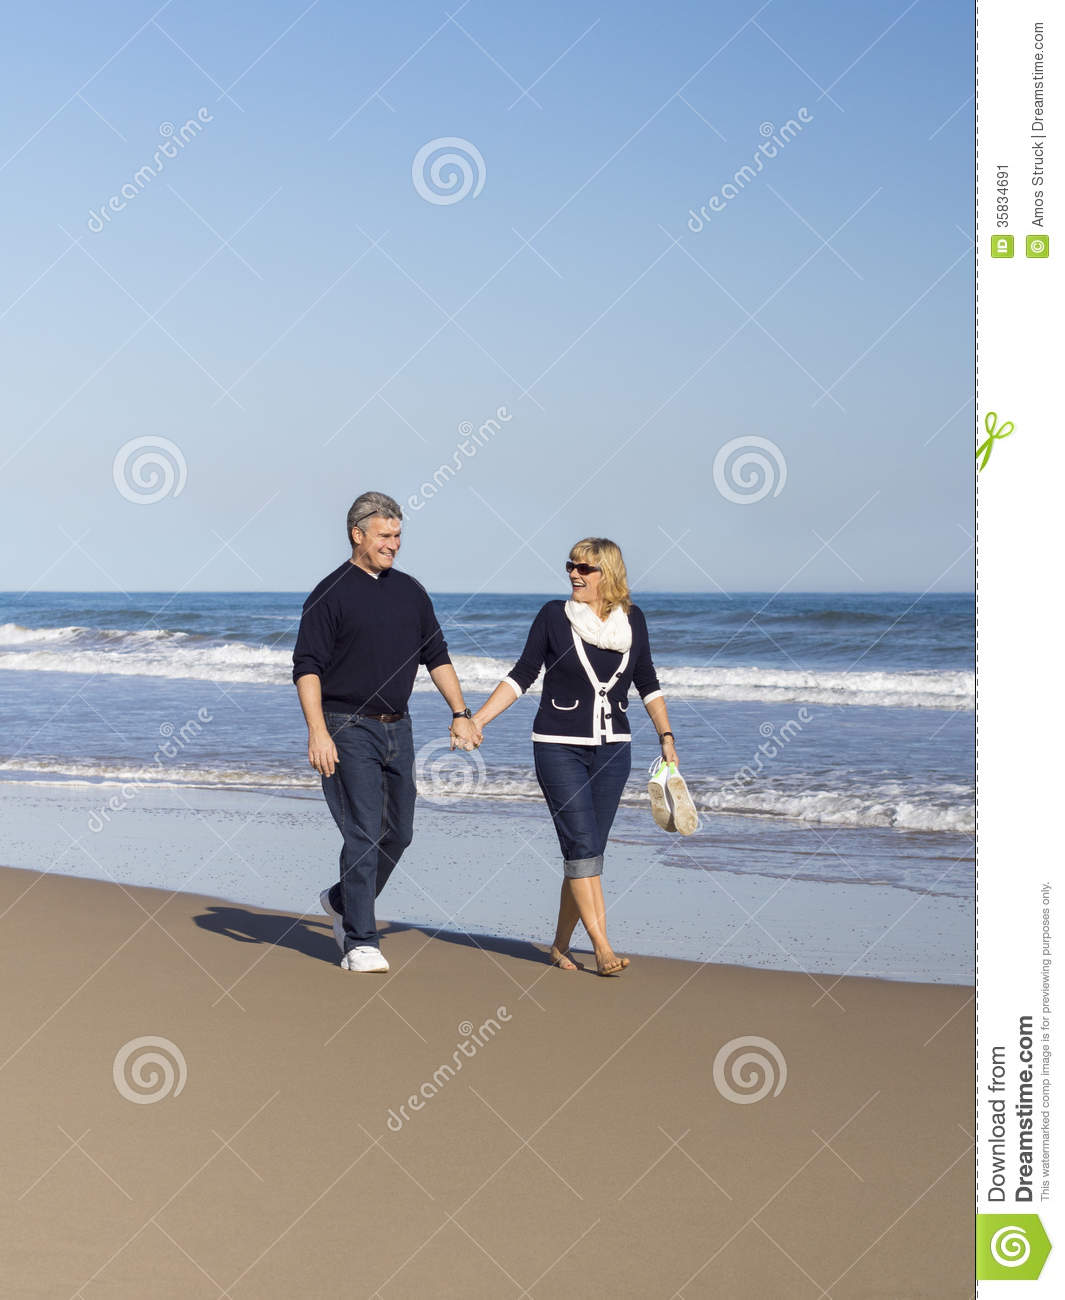 Couple At The Beach Stock Image Image Of Caucasian: Sportive Mature Couple Walking Along The Beach Stock Image